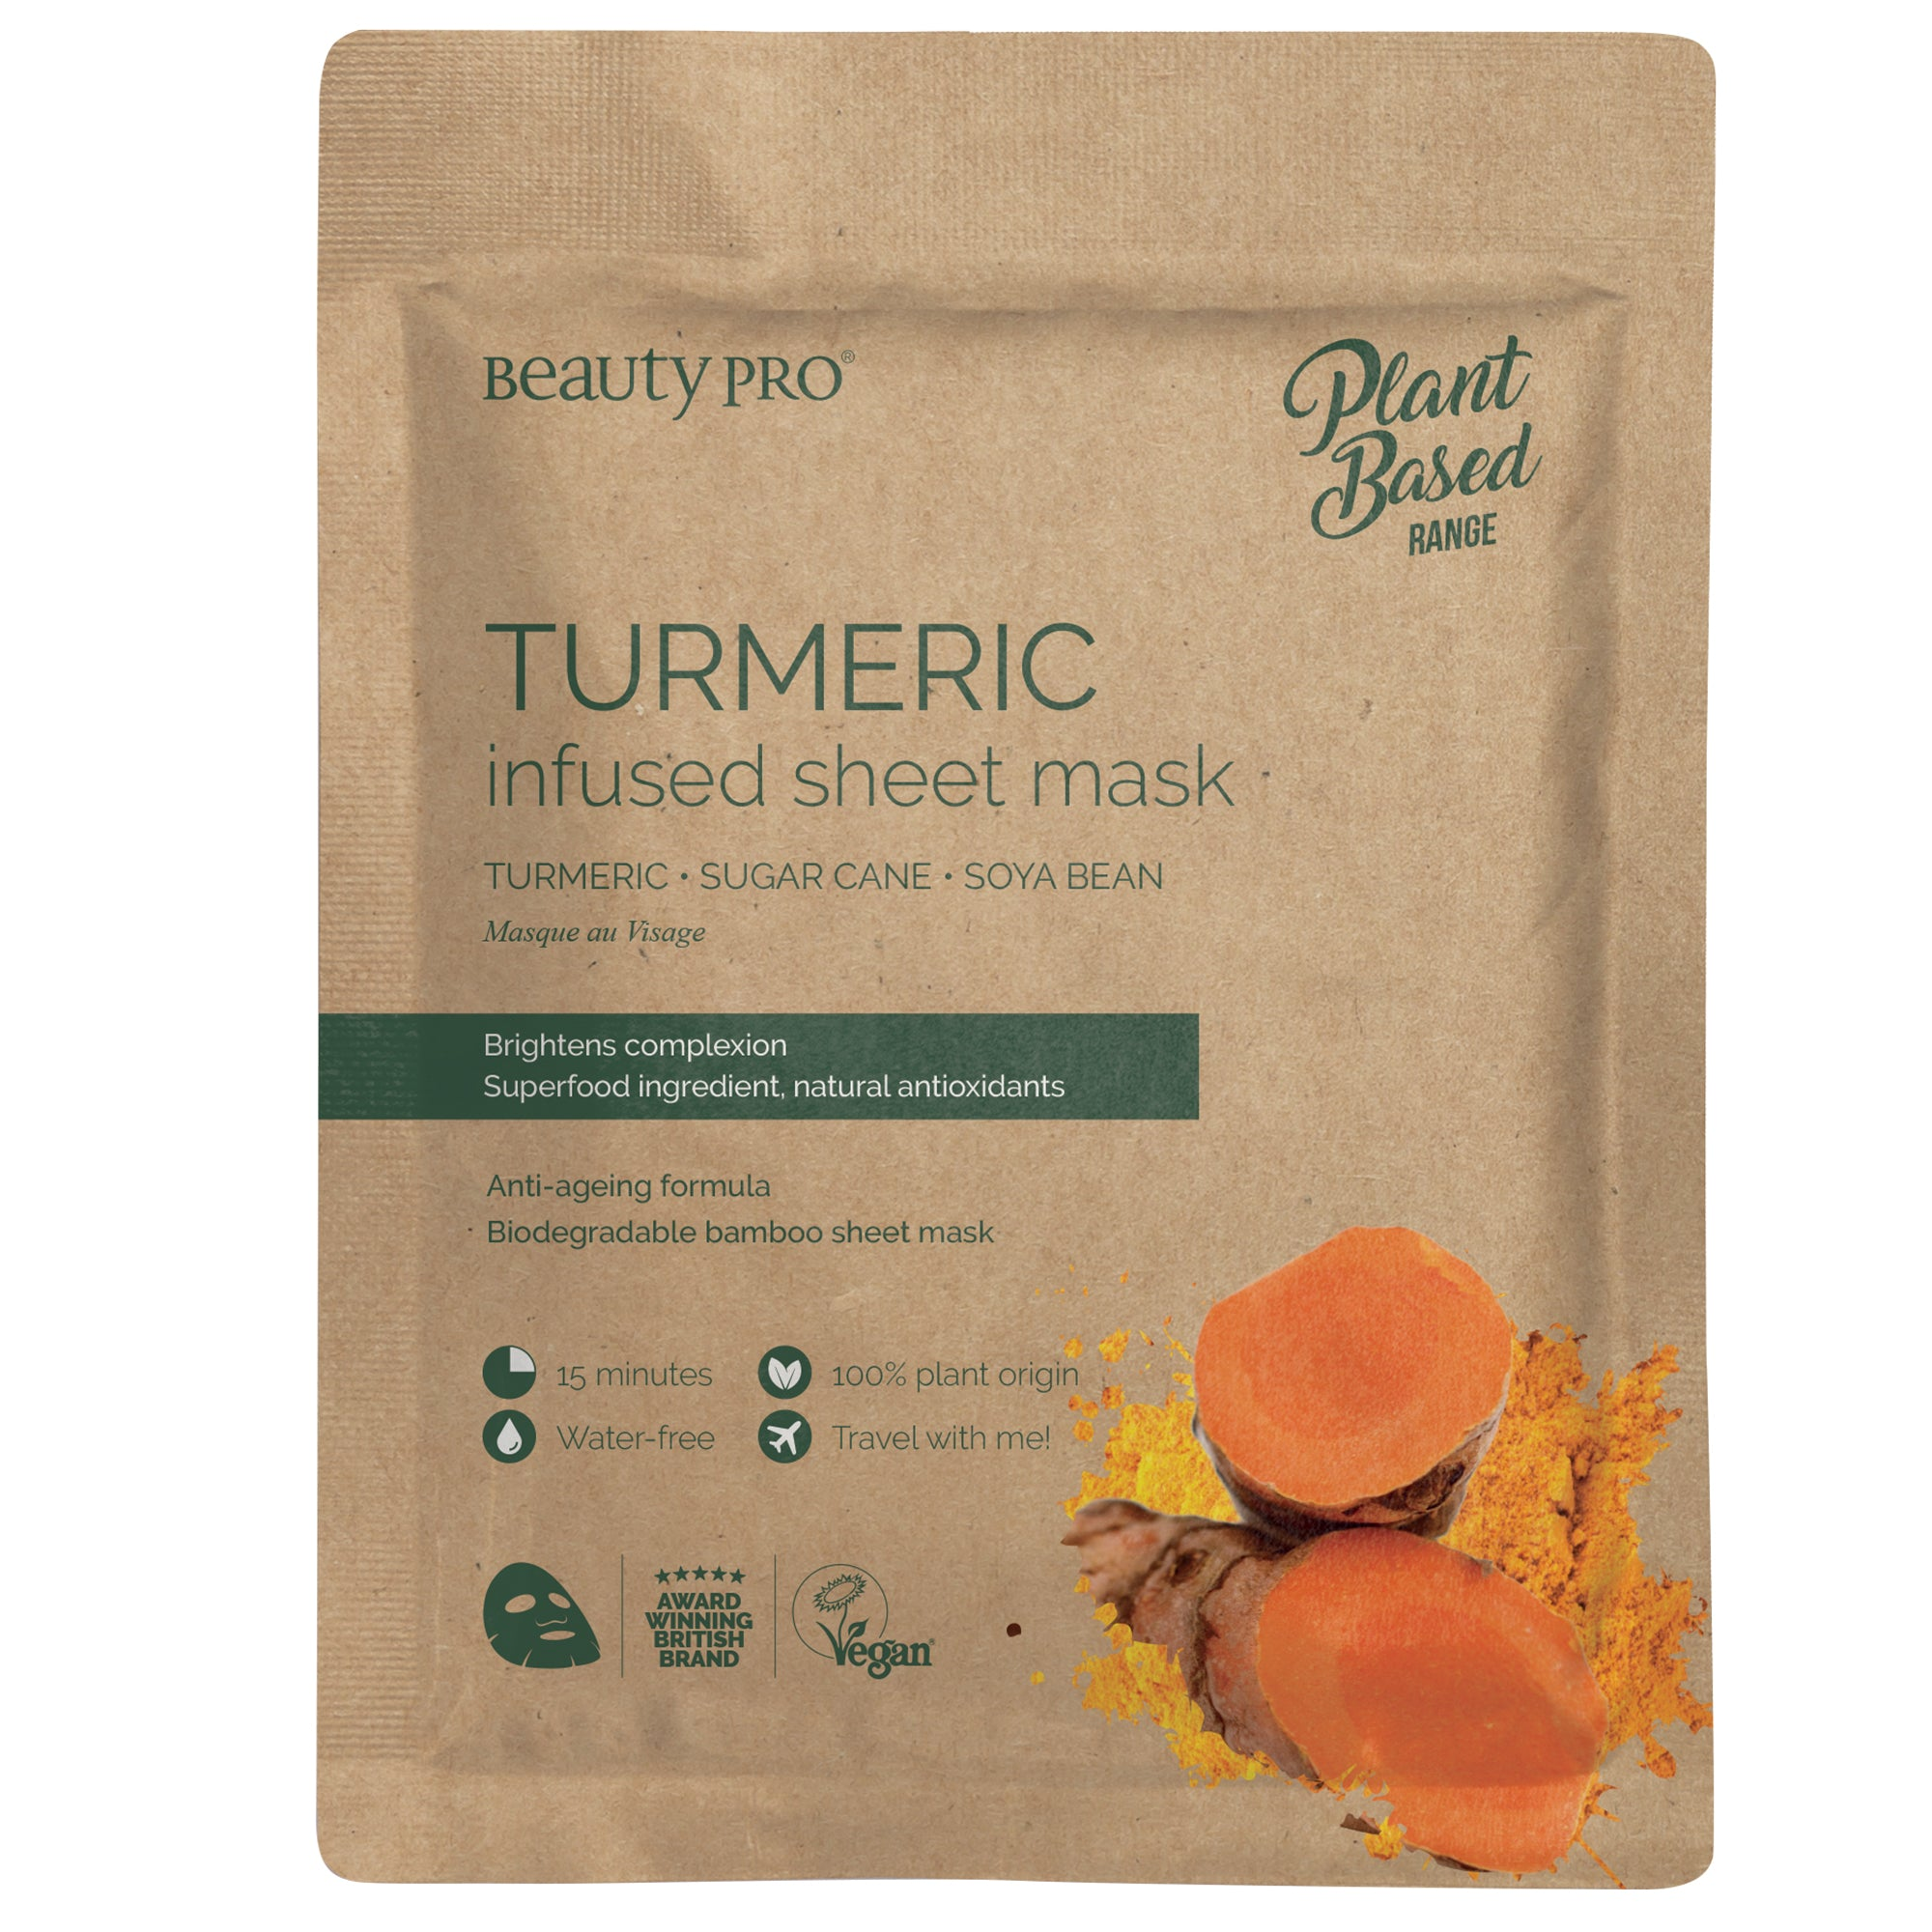 TURMERIC Infused Sheet Face Mask